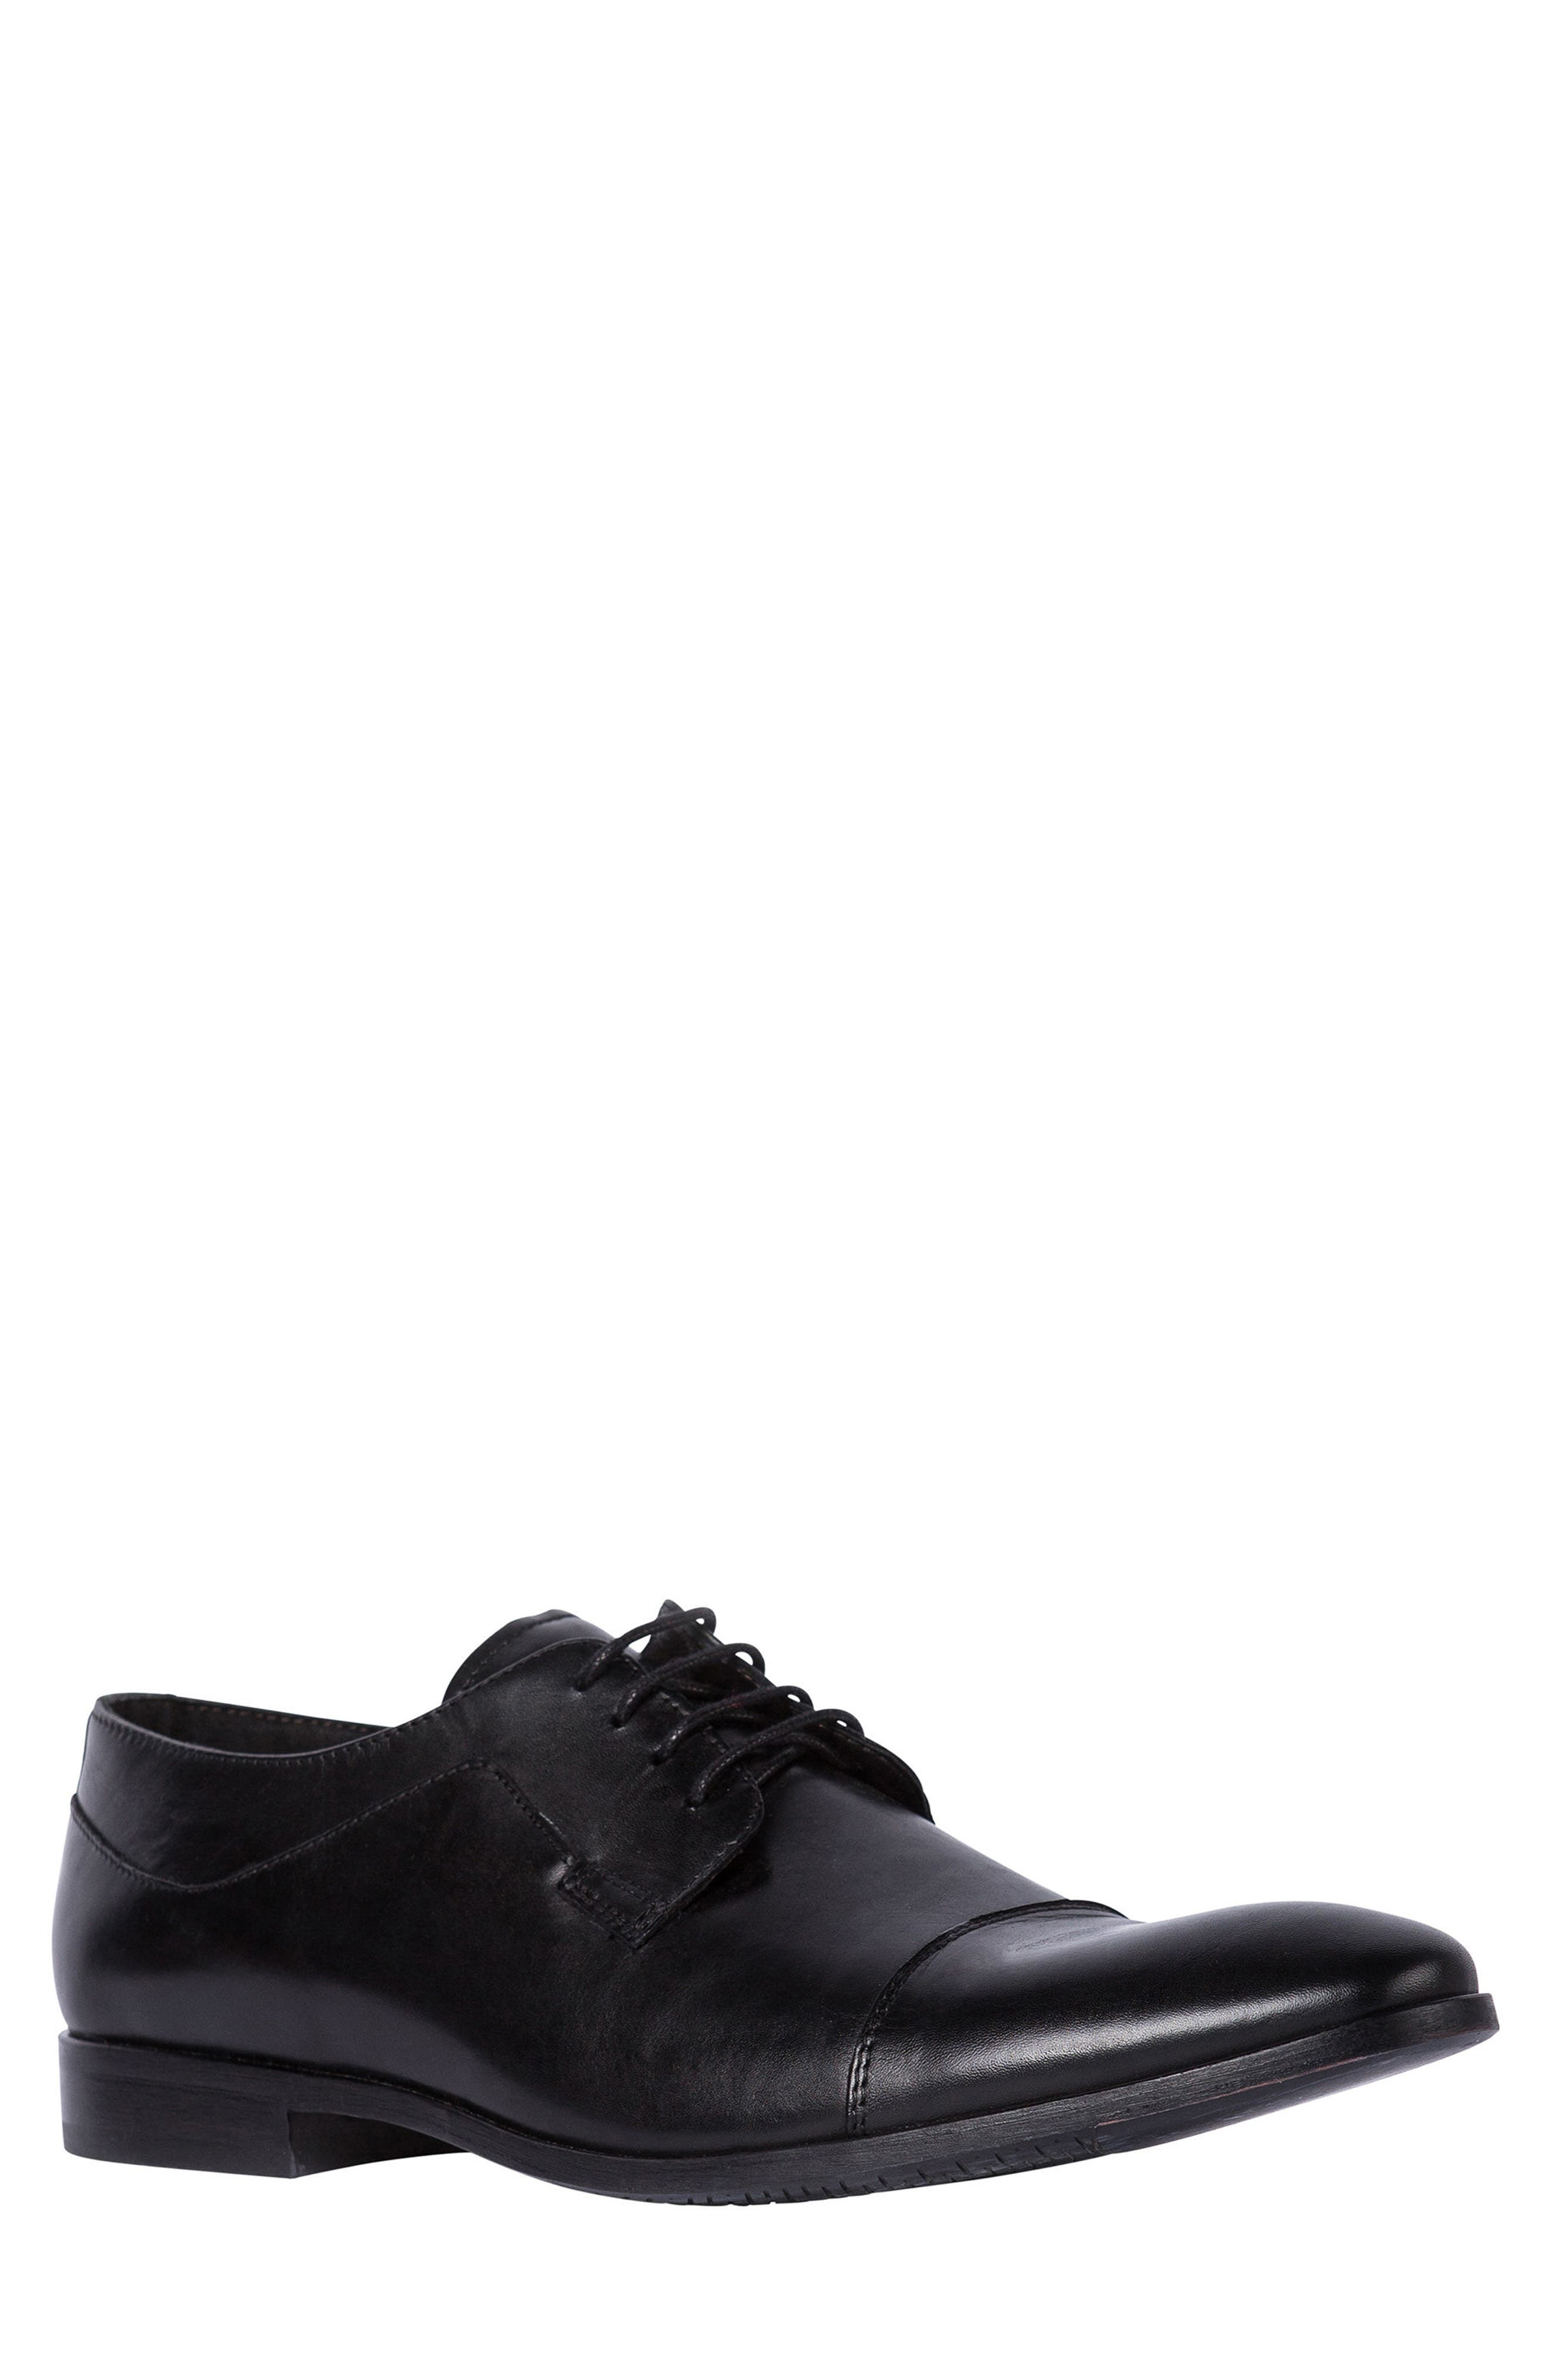 Admiral's Way Cap Toe Derby,                         Main,                         color, Nero Leather